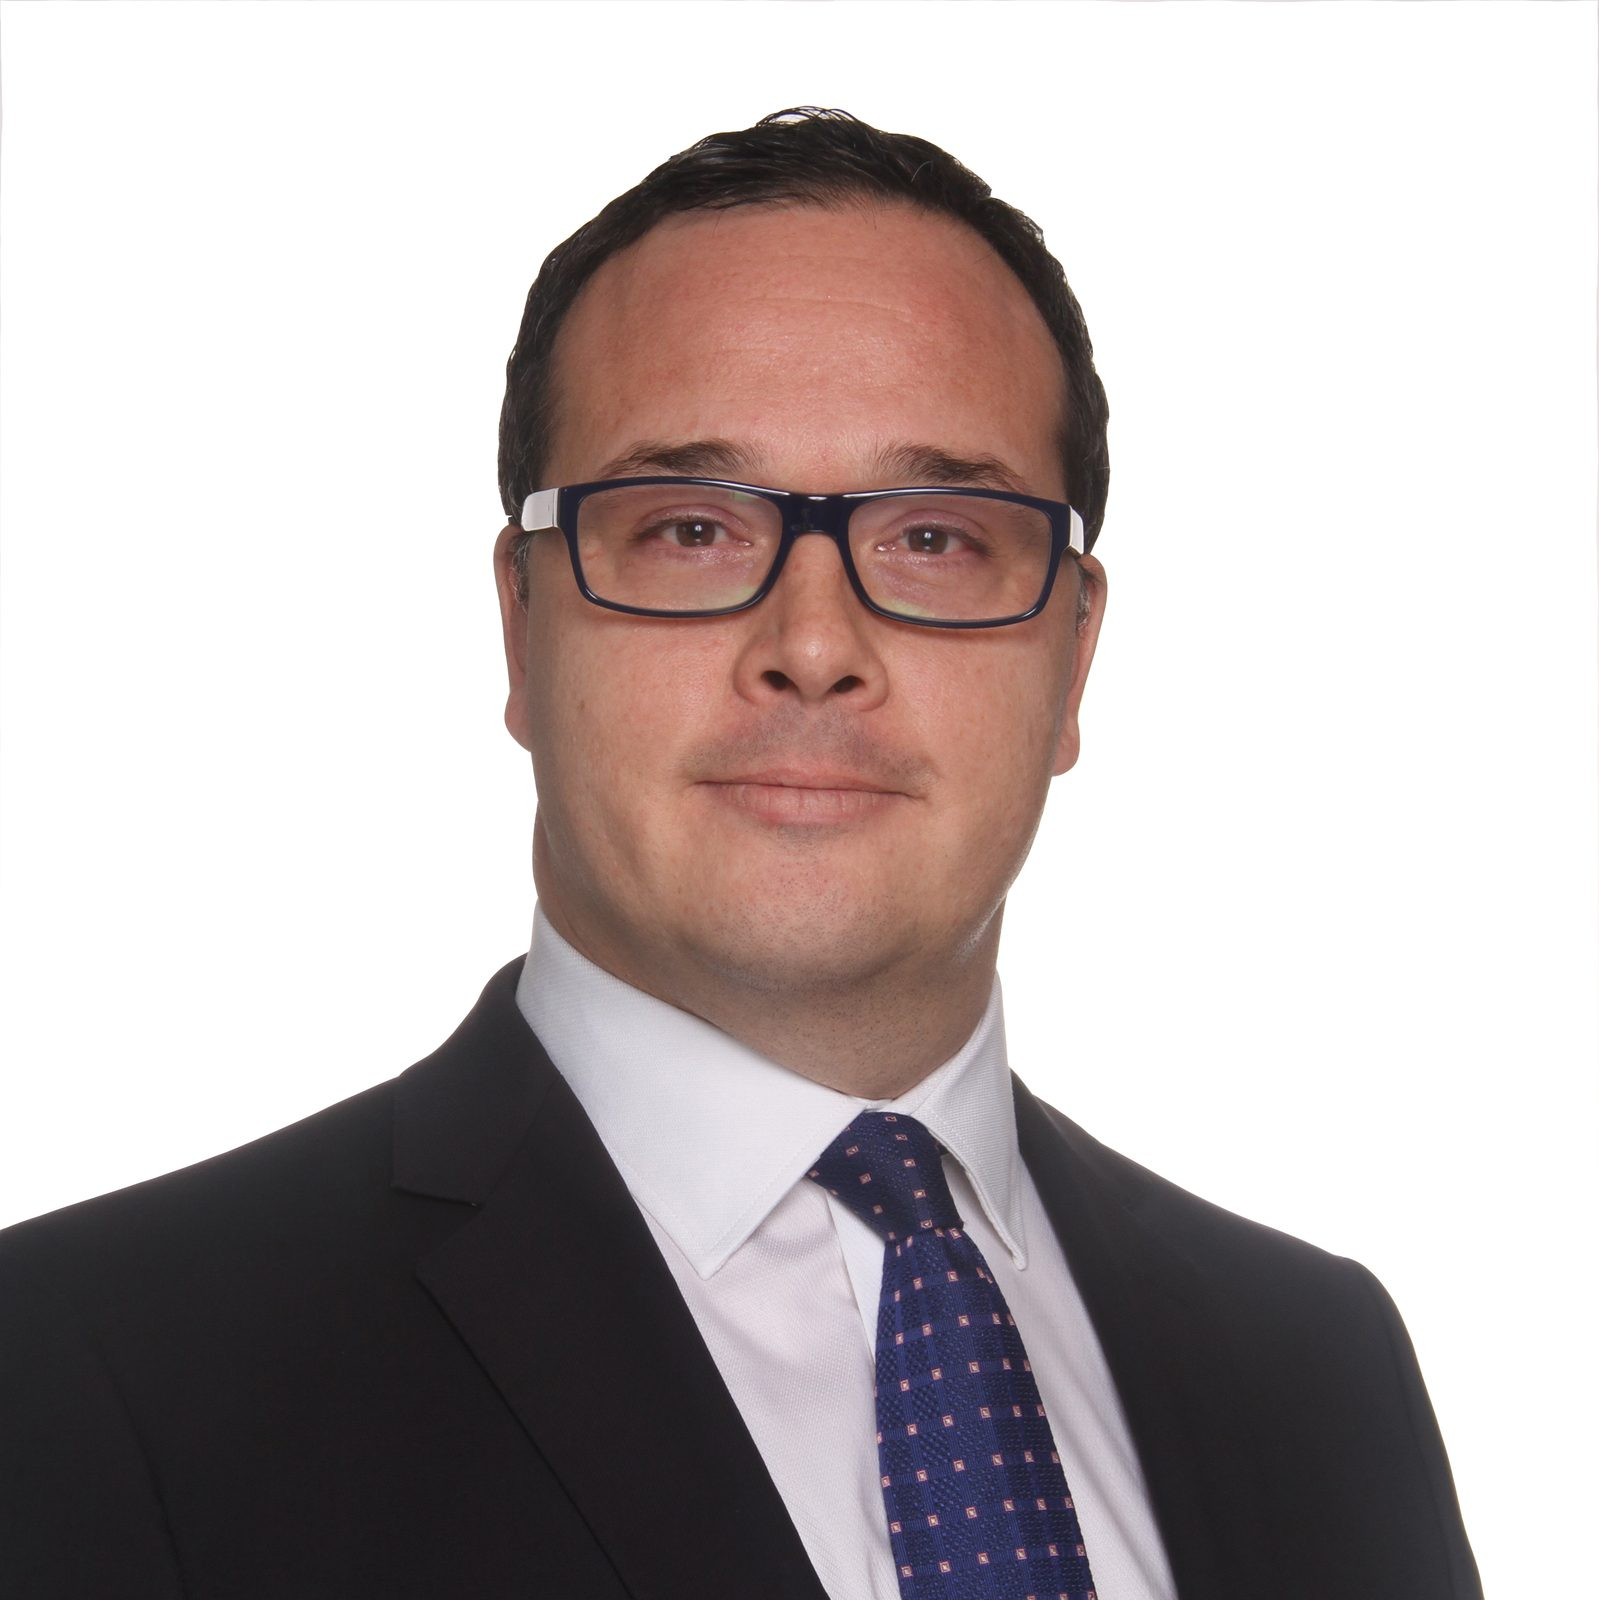 Nicholas Agius - TD Wealth Private Investment Advice - North York, ON M2N 6L7 - (416)512-6544 | ShowMeLocal.com